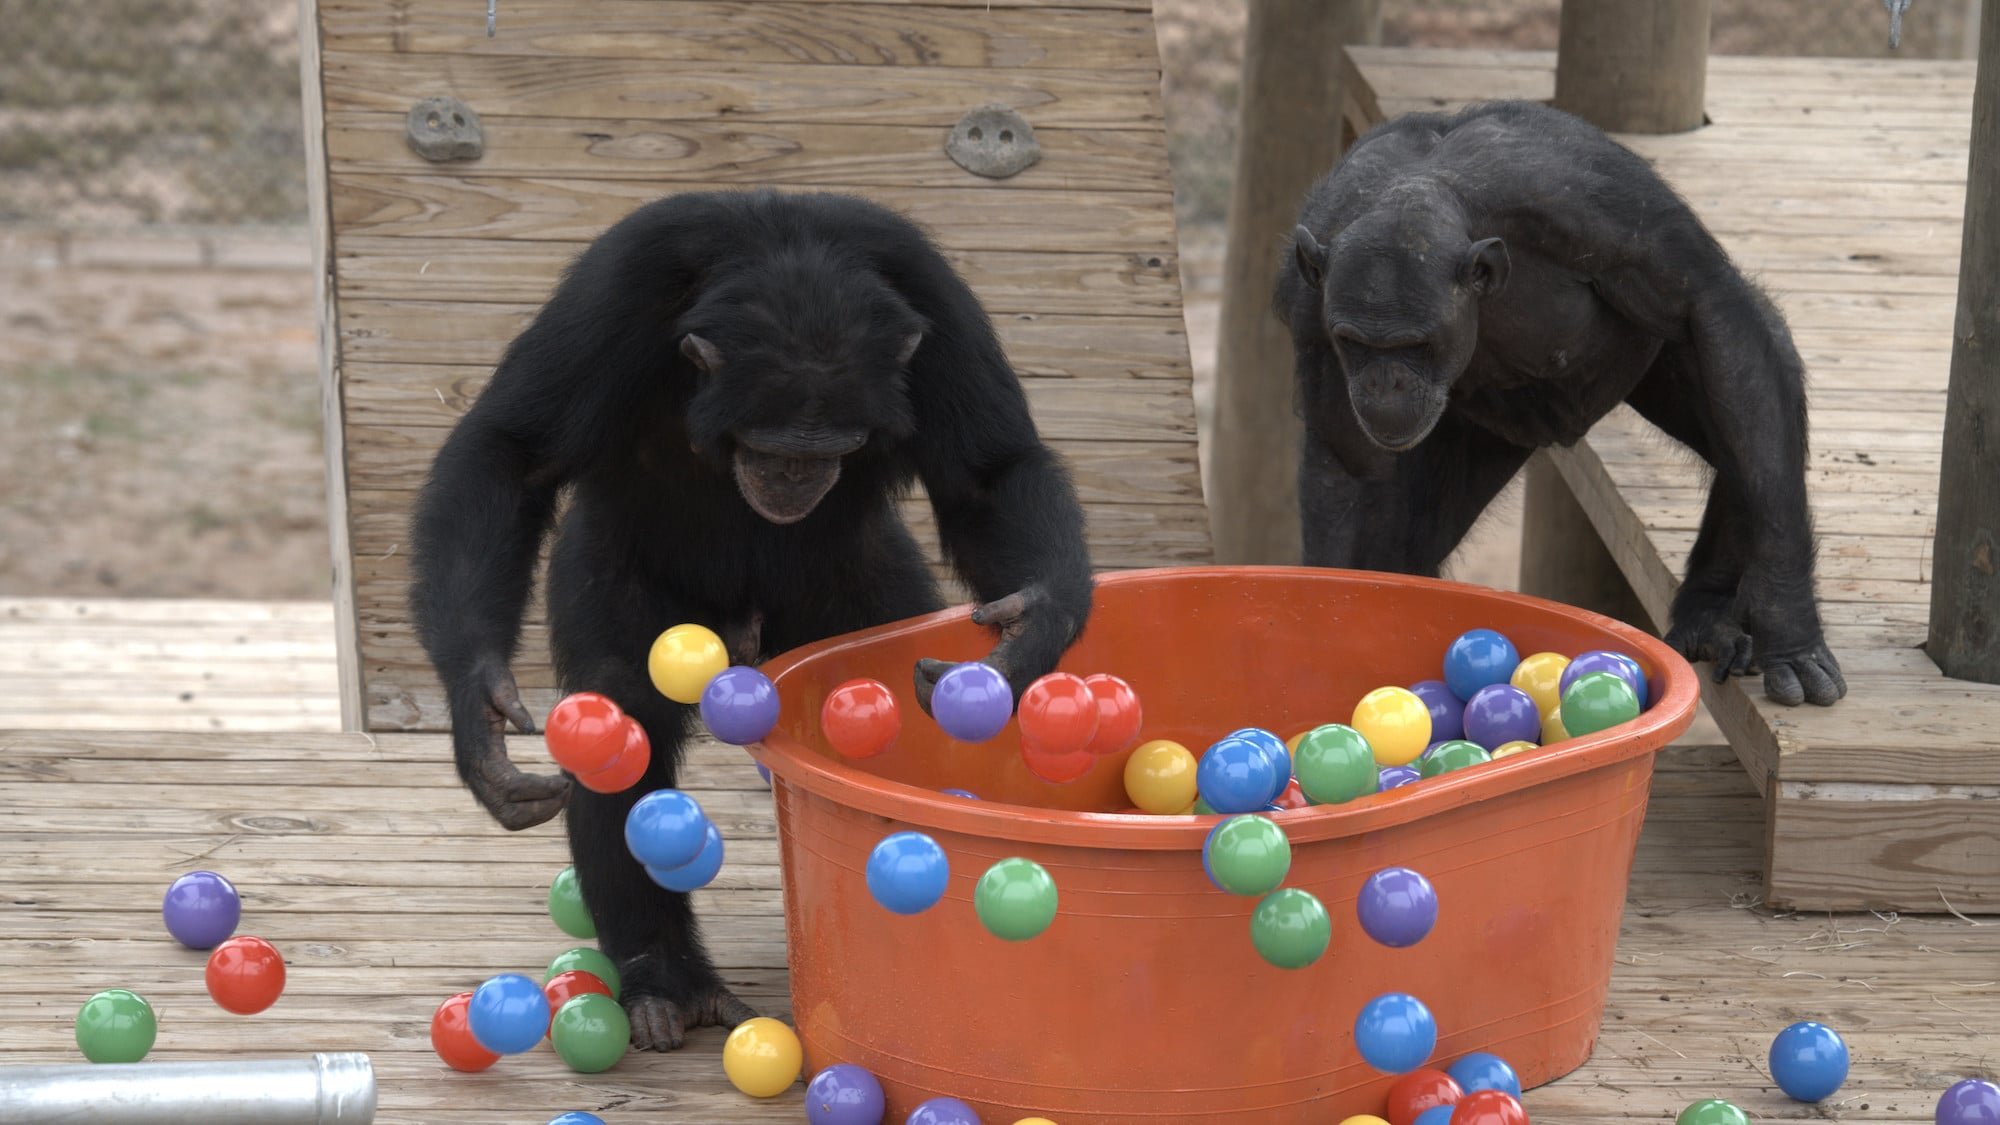 Riley tossing balls out of the ball pit as Chakema peers in. Slim's group. (National Geographic/Virginia Quinn)